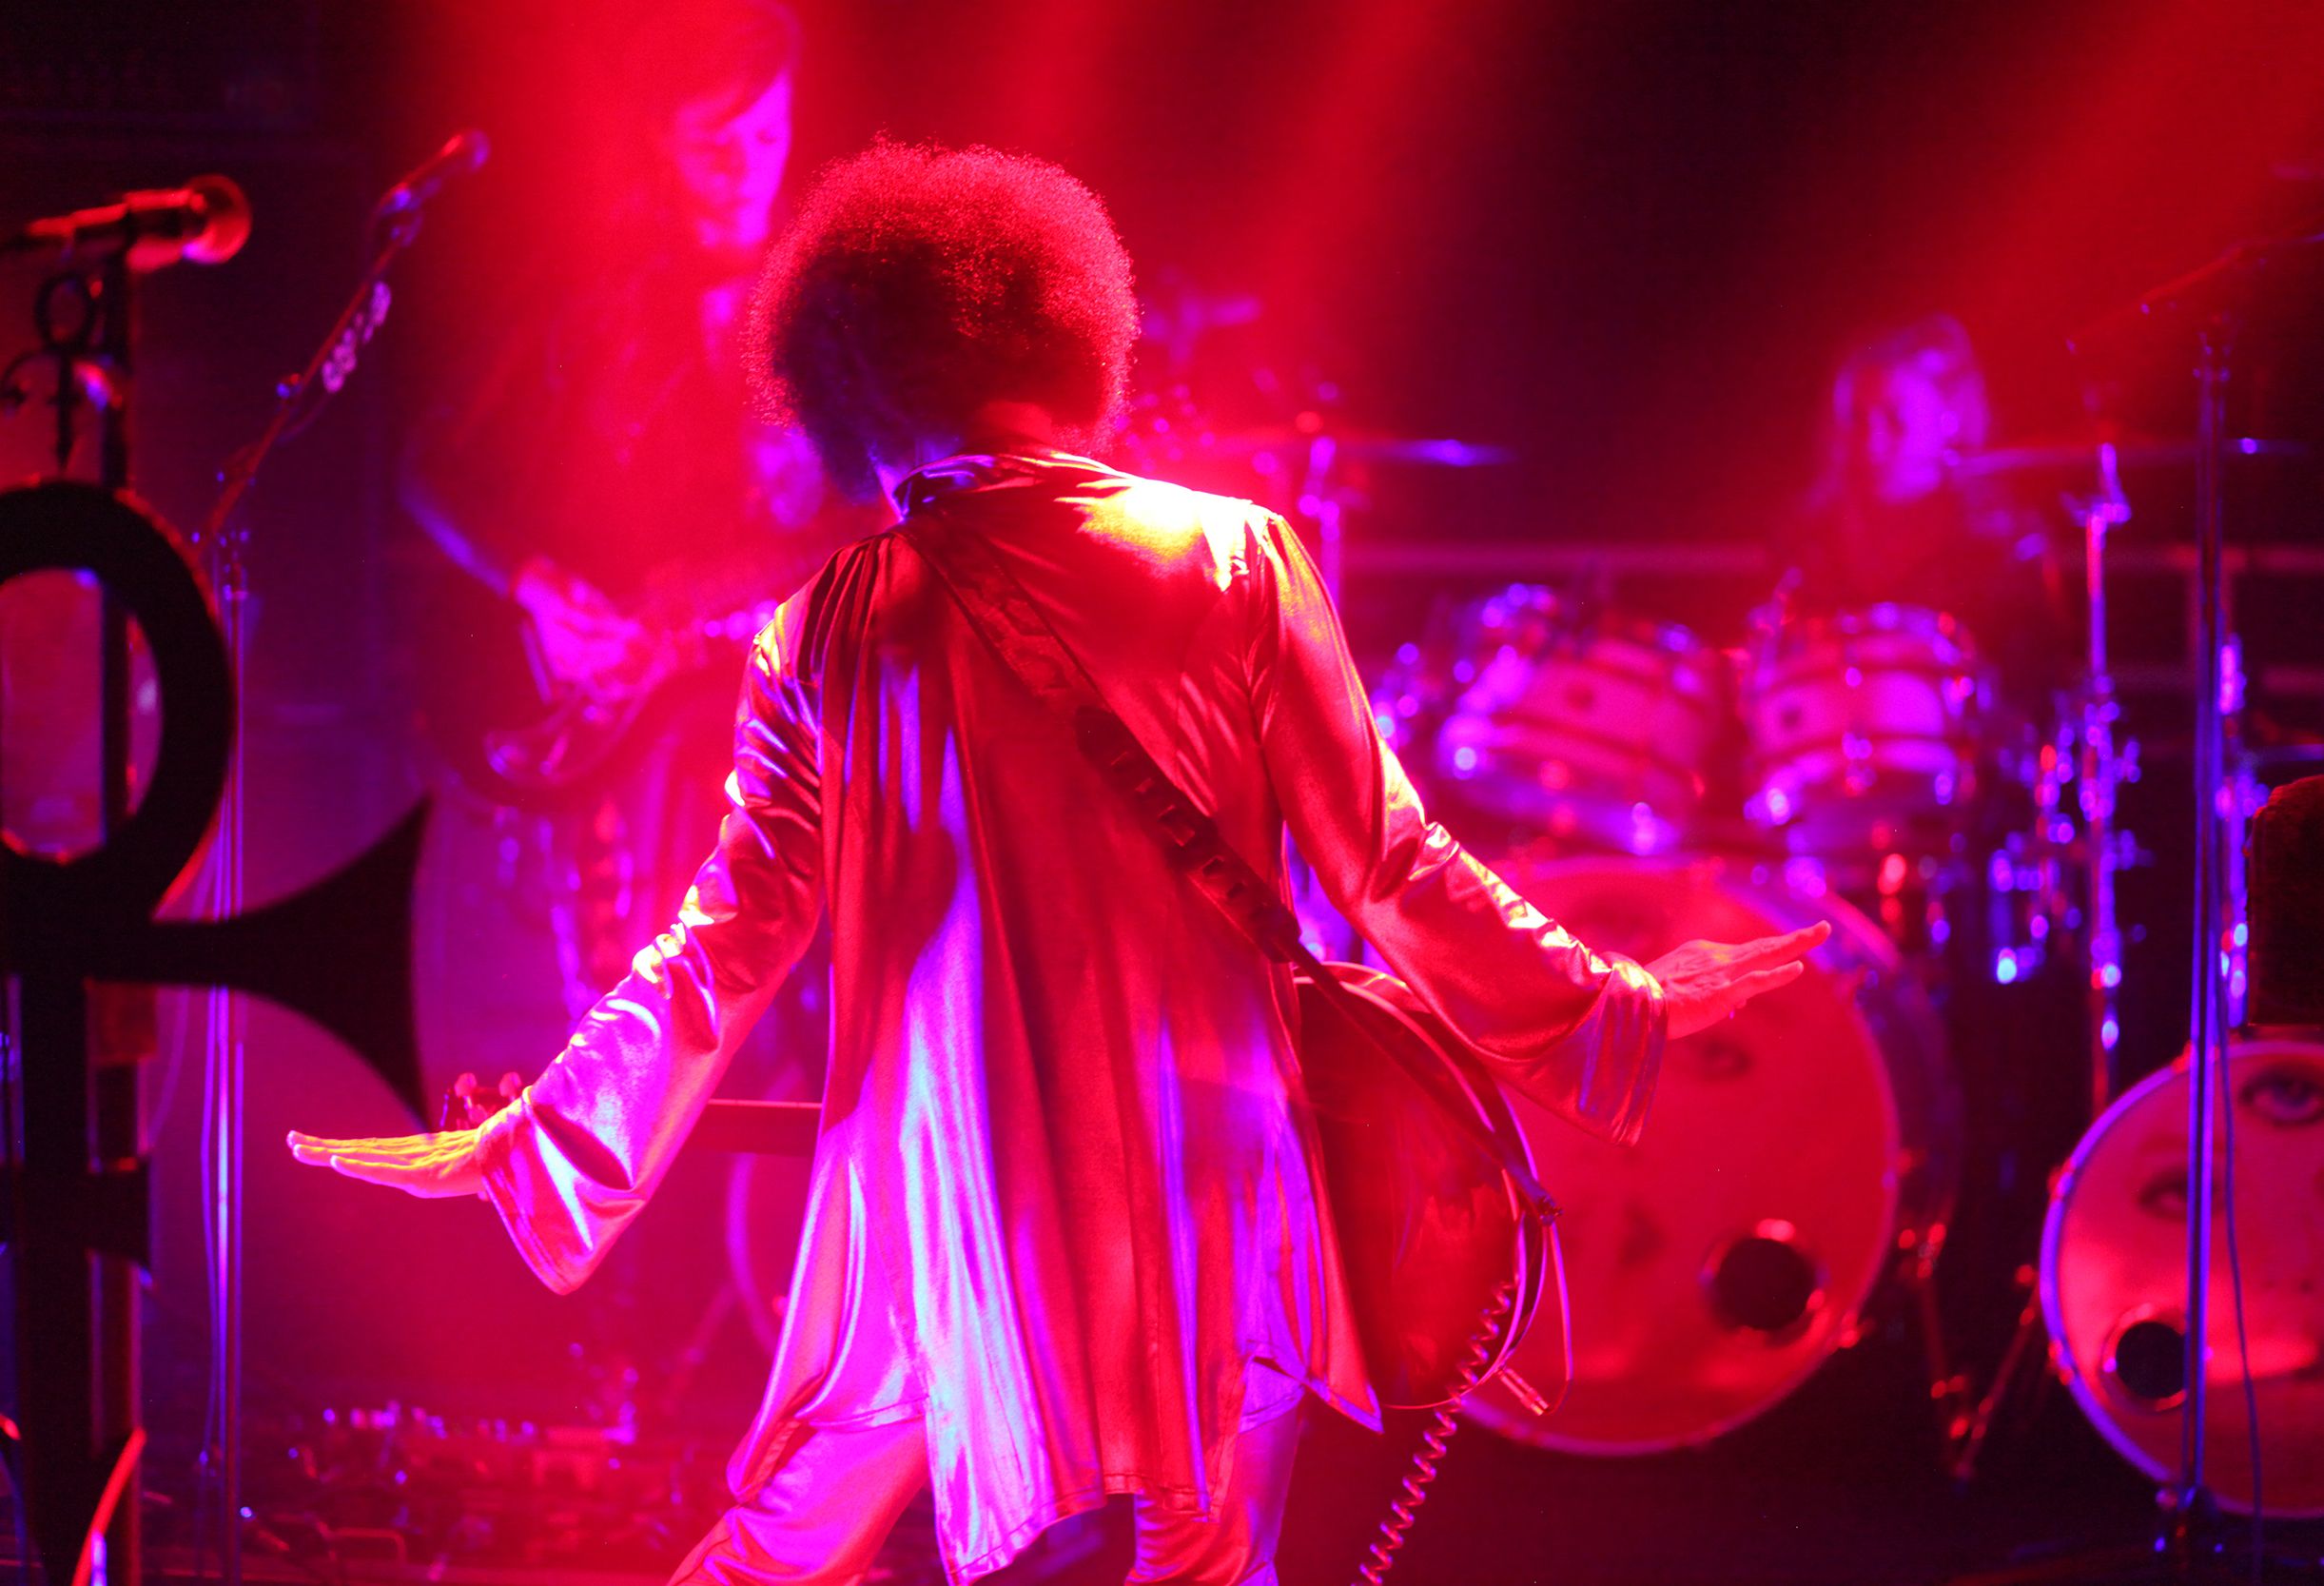 prince-in-dubai-autism-rocks-red.jpg